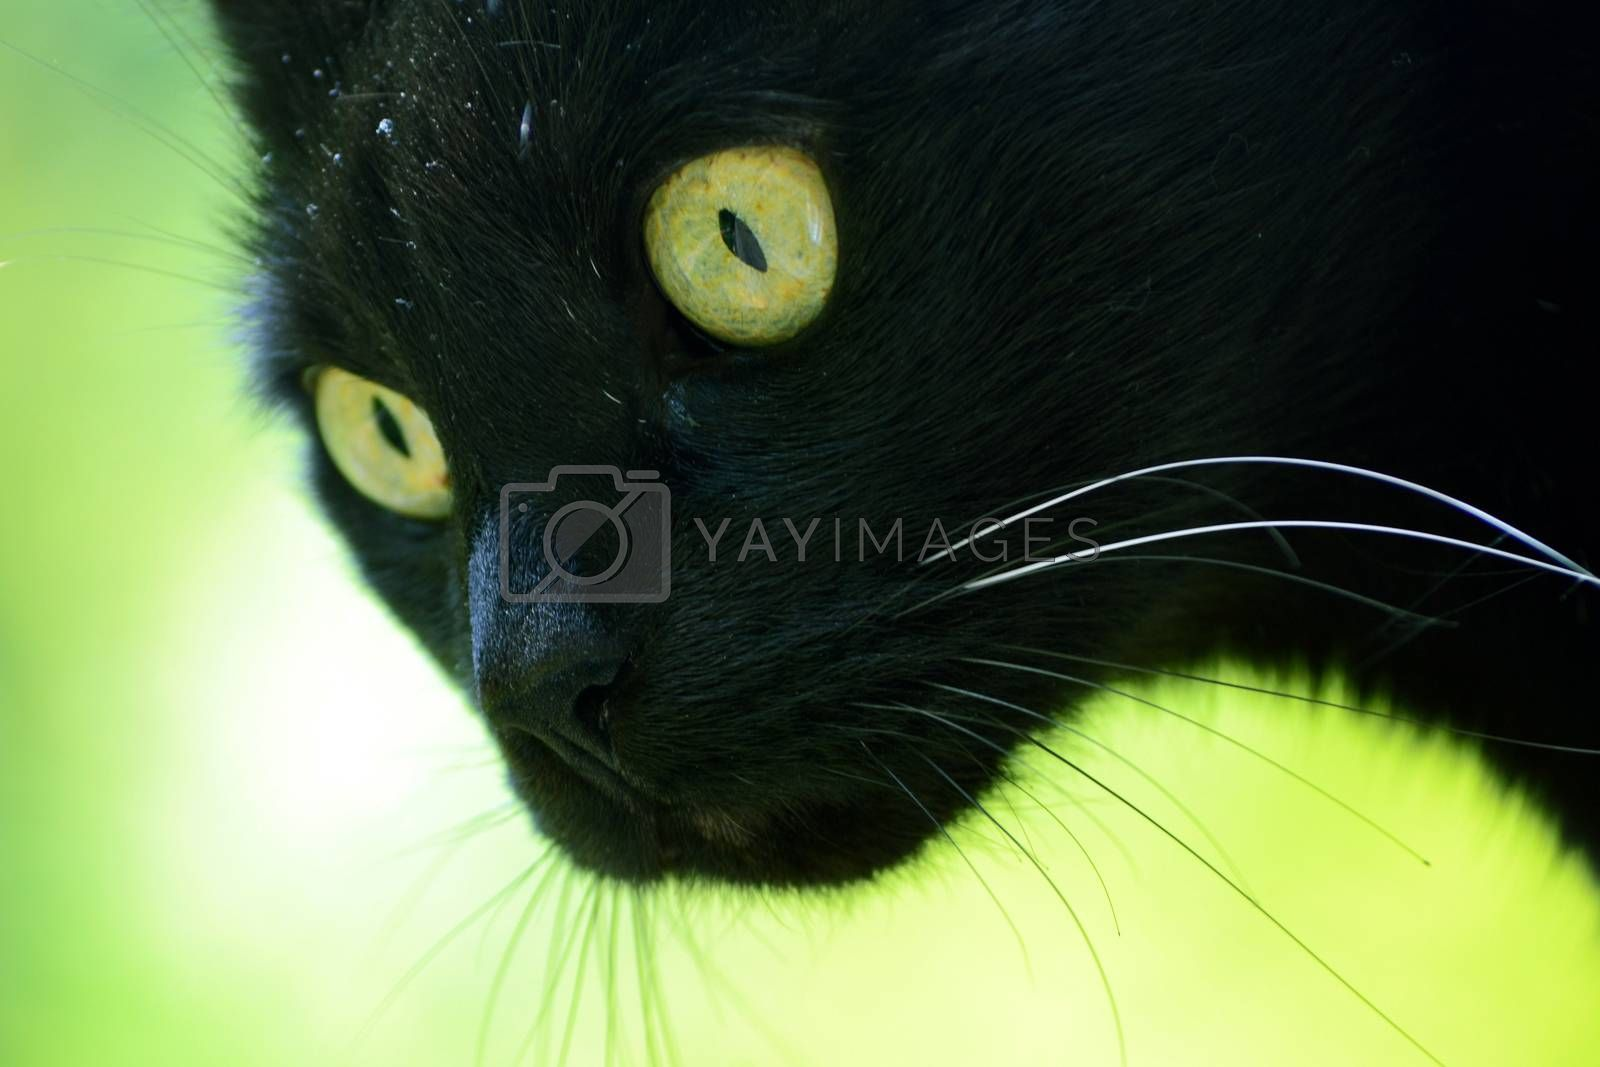 Black cat with green eyes on green background